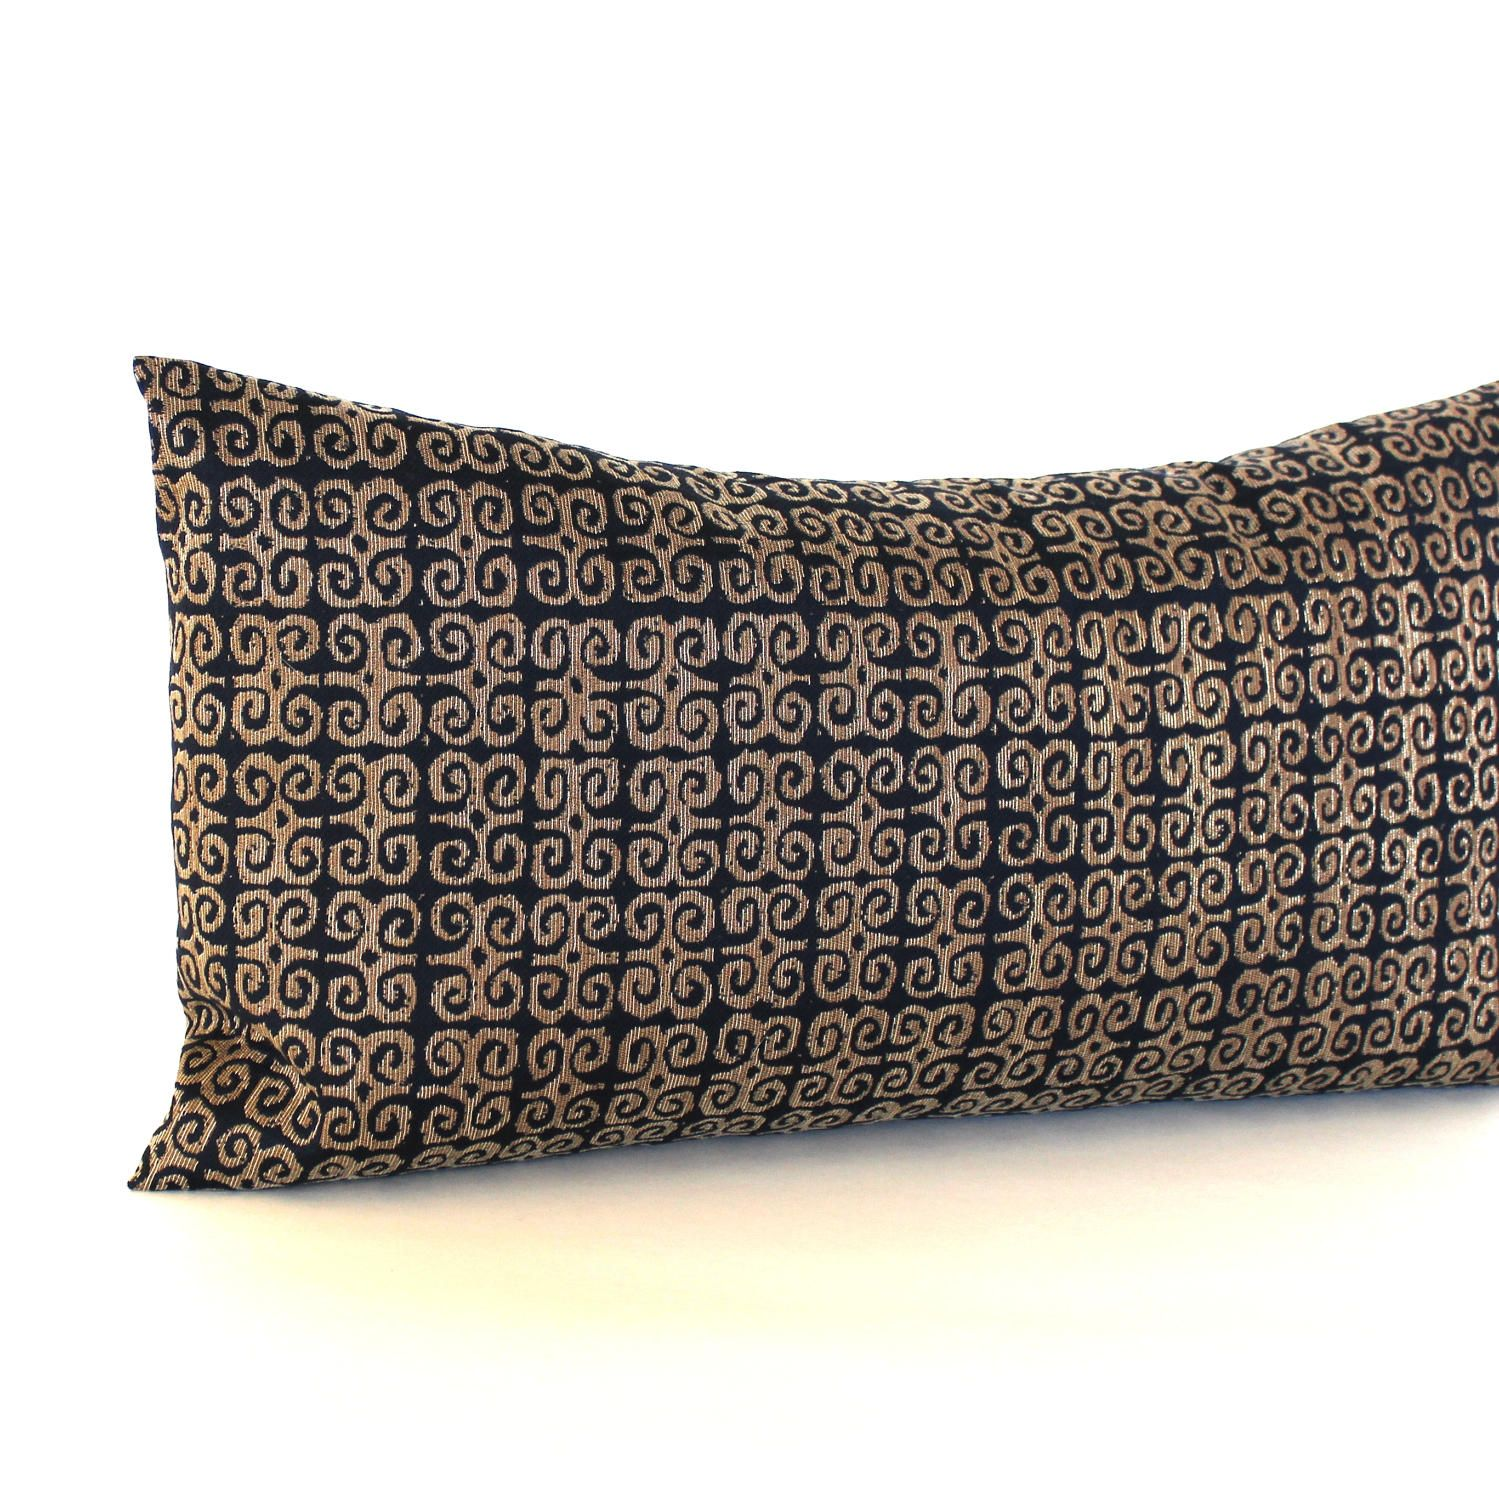 Throw Pillow Cover Fabric : Lumbar Pillow Cover Black Bronze Throw Pillow Cover Medallion Upholstery Fabric Oblong ...